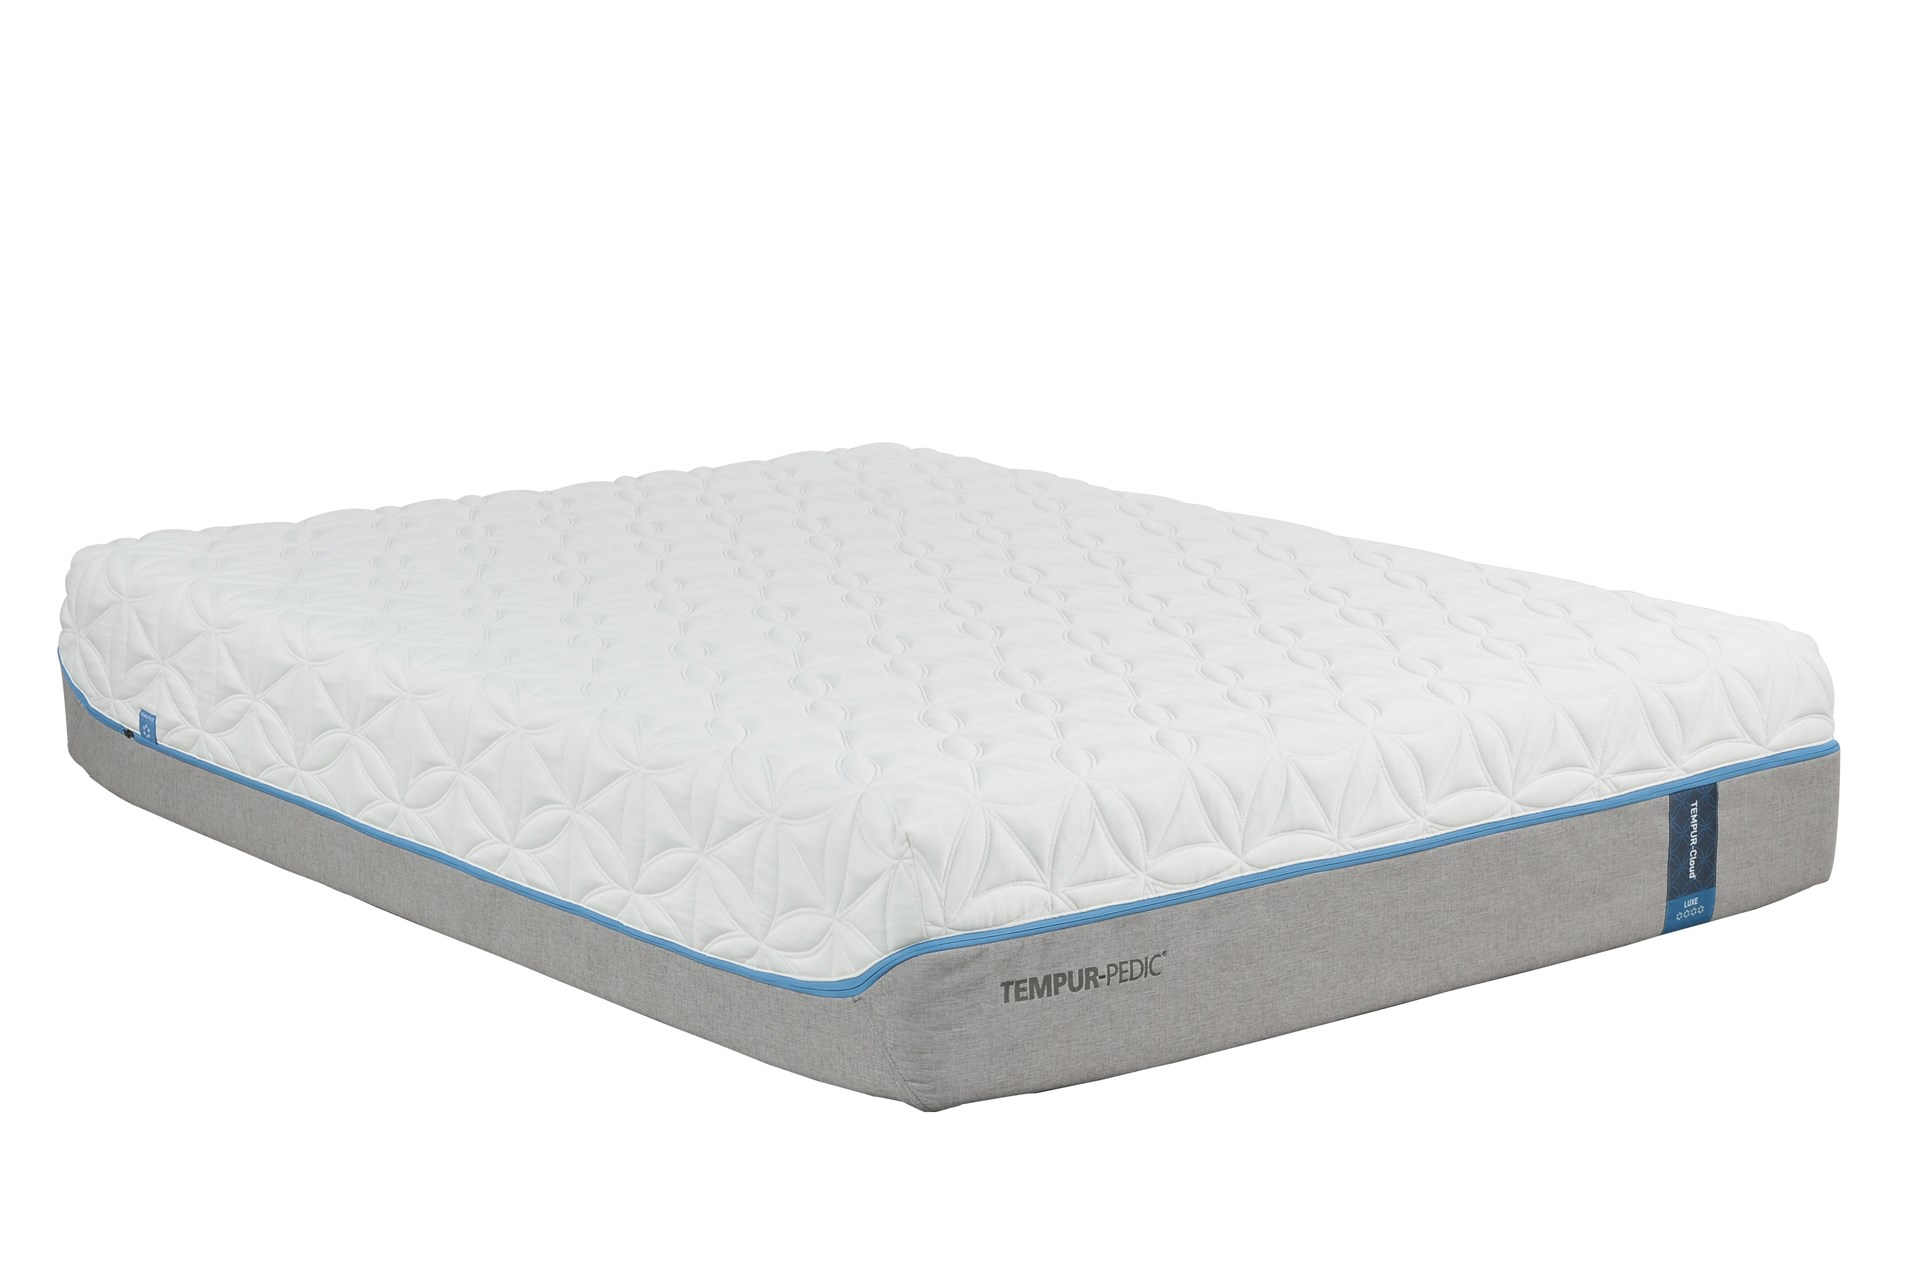 cloud pedic tempur p pillow